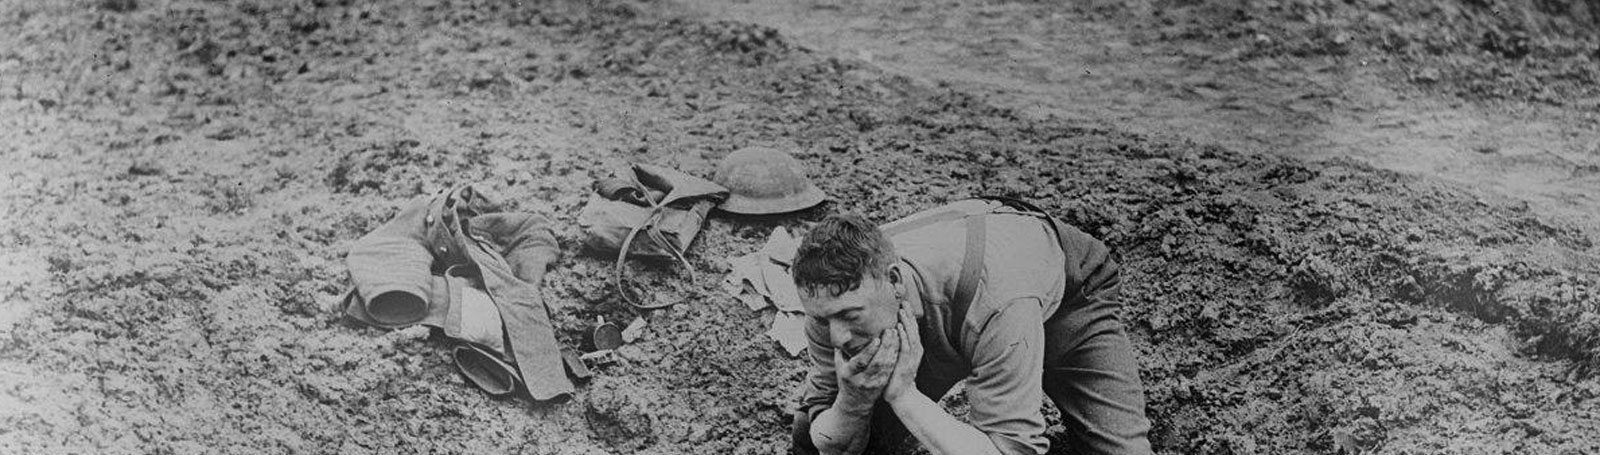 Sensuous life in the trenches - The British Library